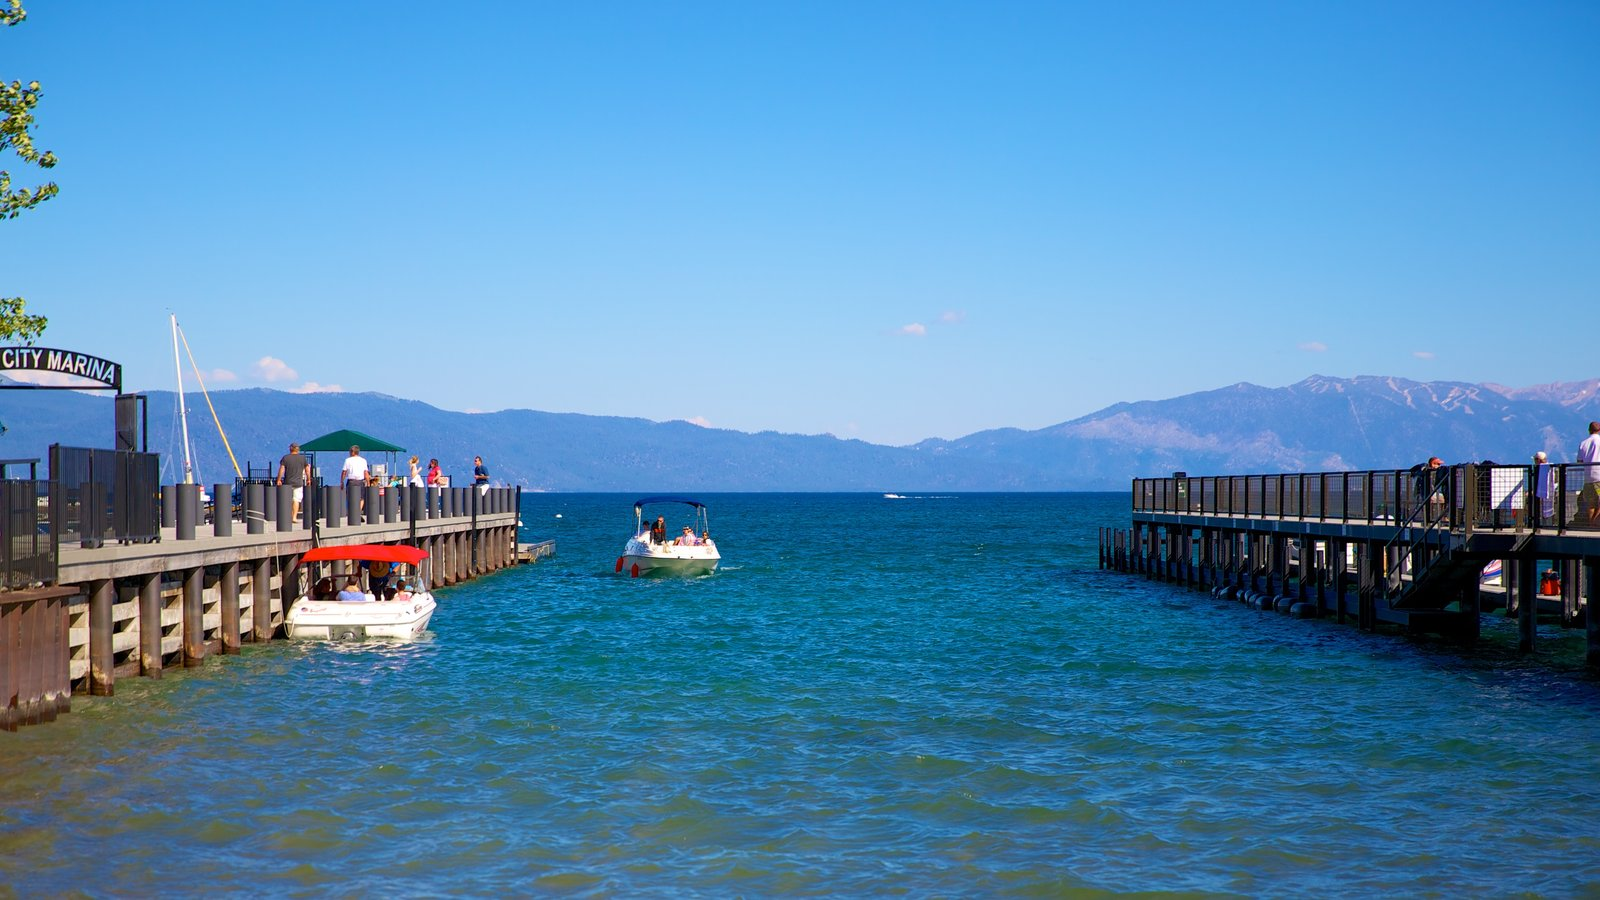 Tahoe City showing a coastal town, boating and a lake or waterhole